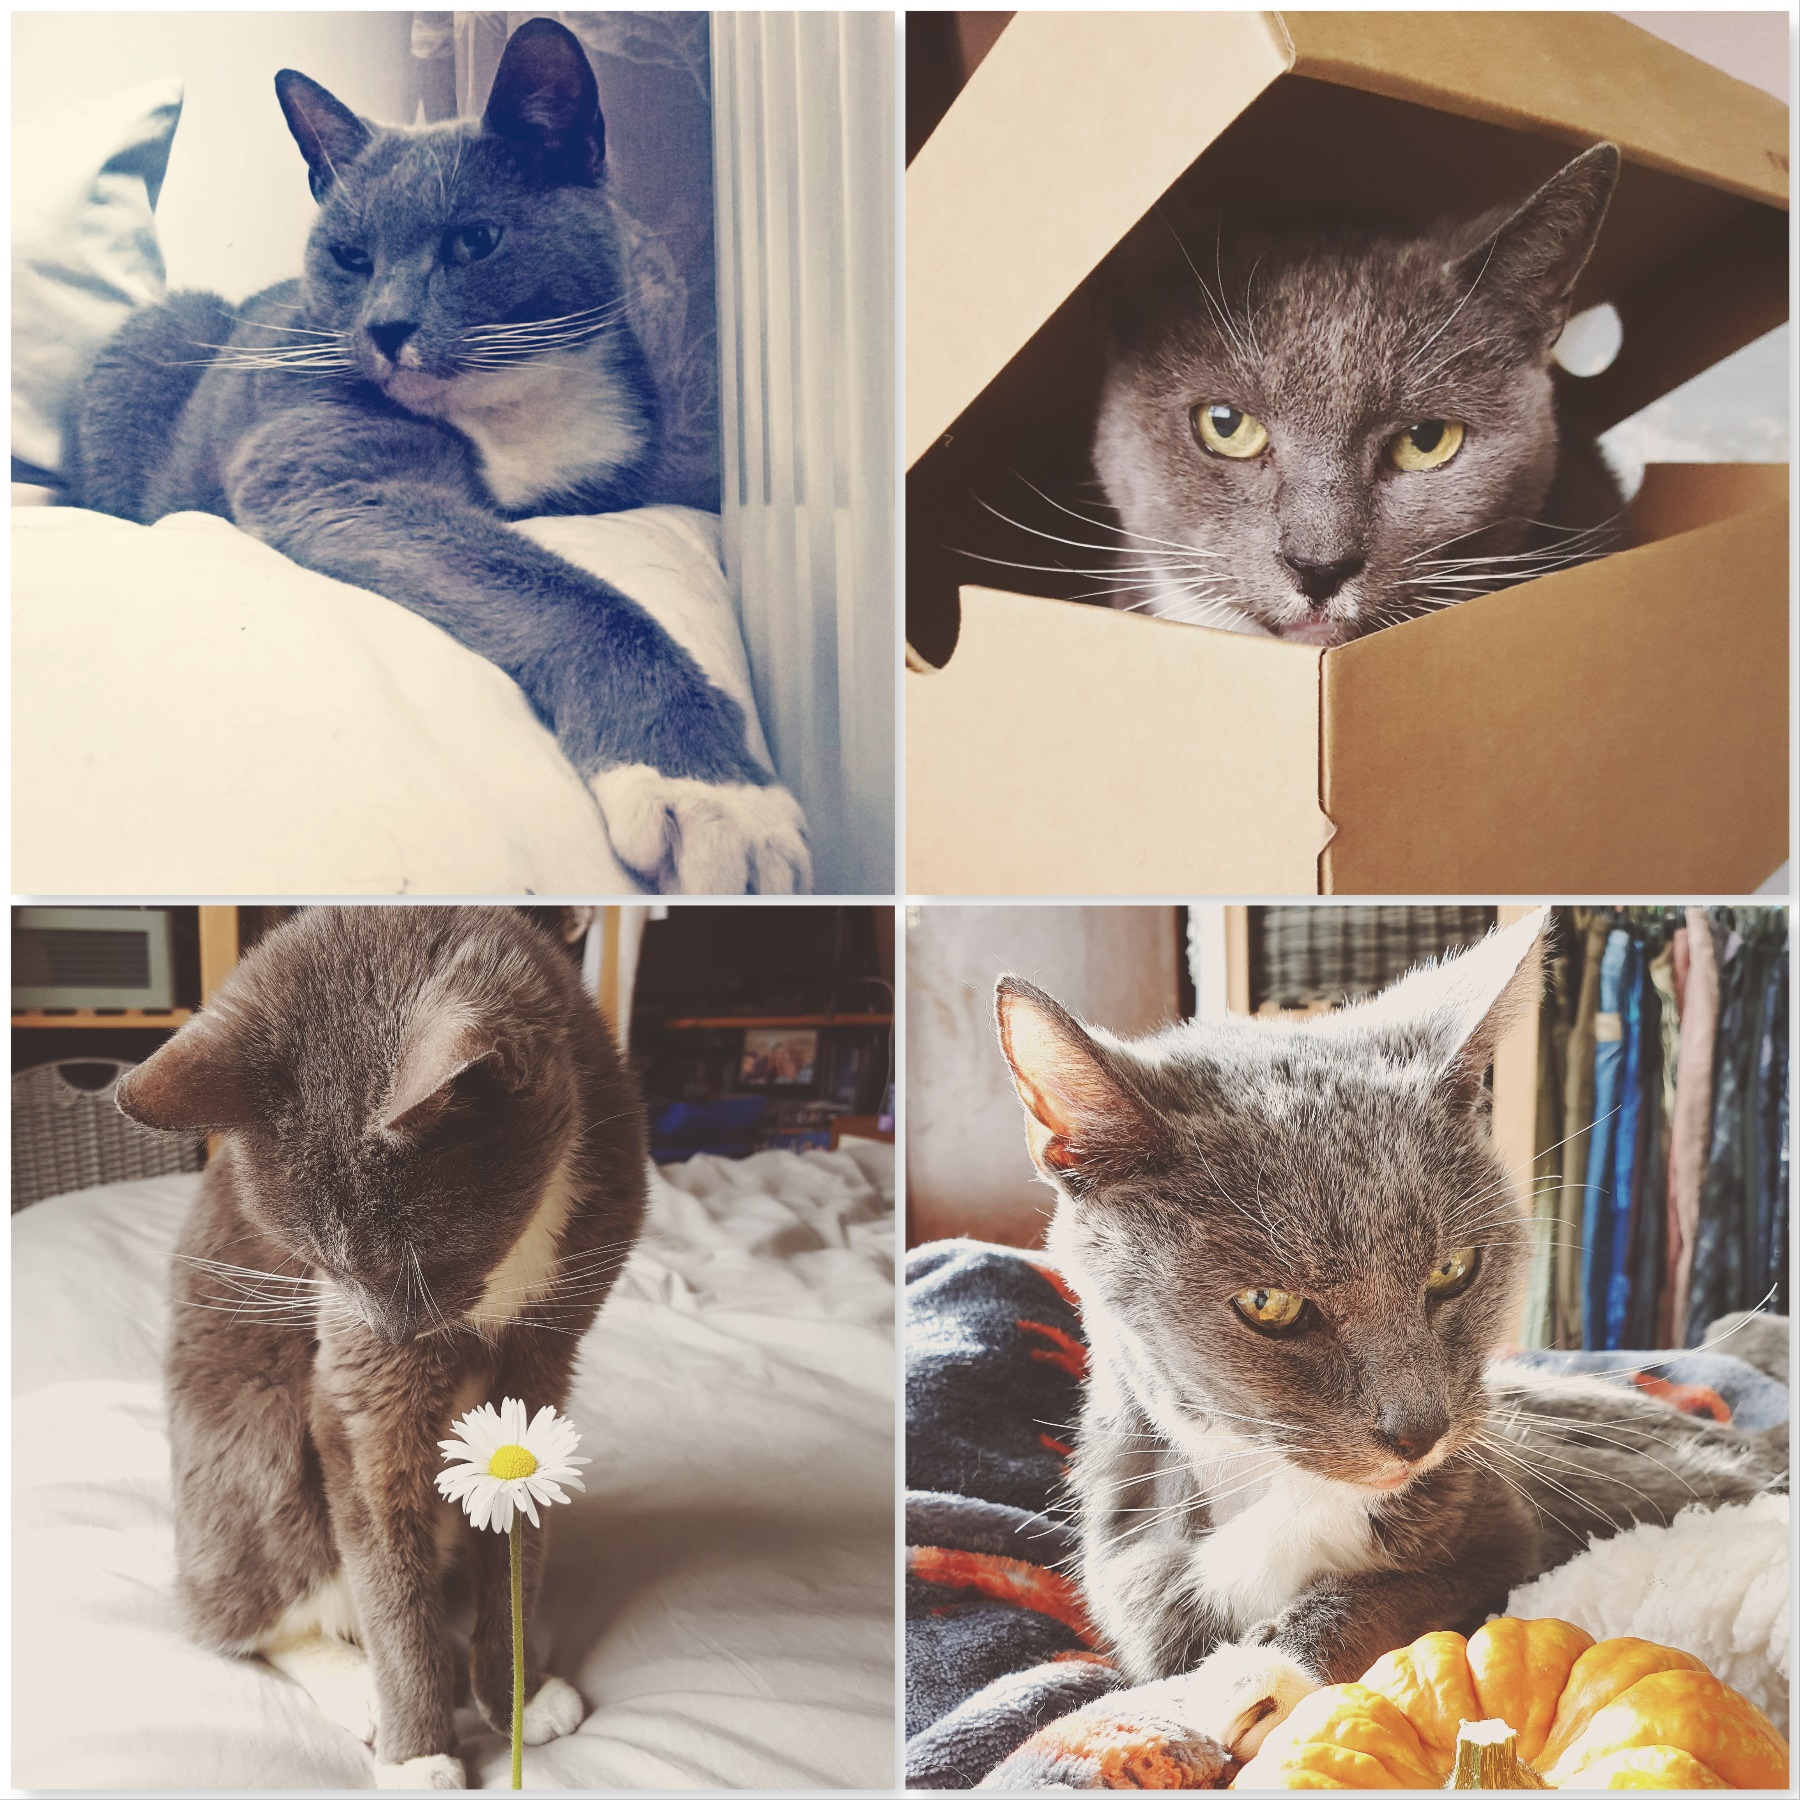 four photos of Misty grey cat - one stretching on bed, one in a box, one with a daisy, one with pumpkin